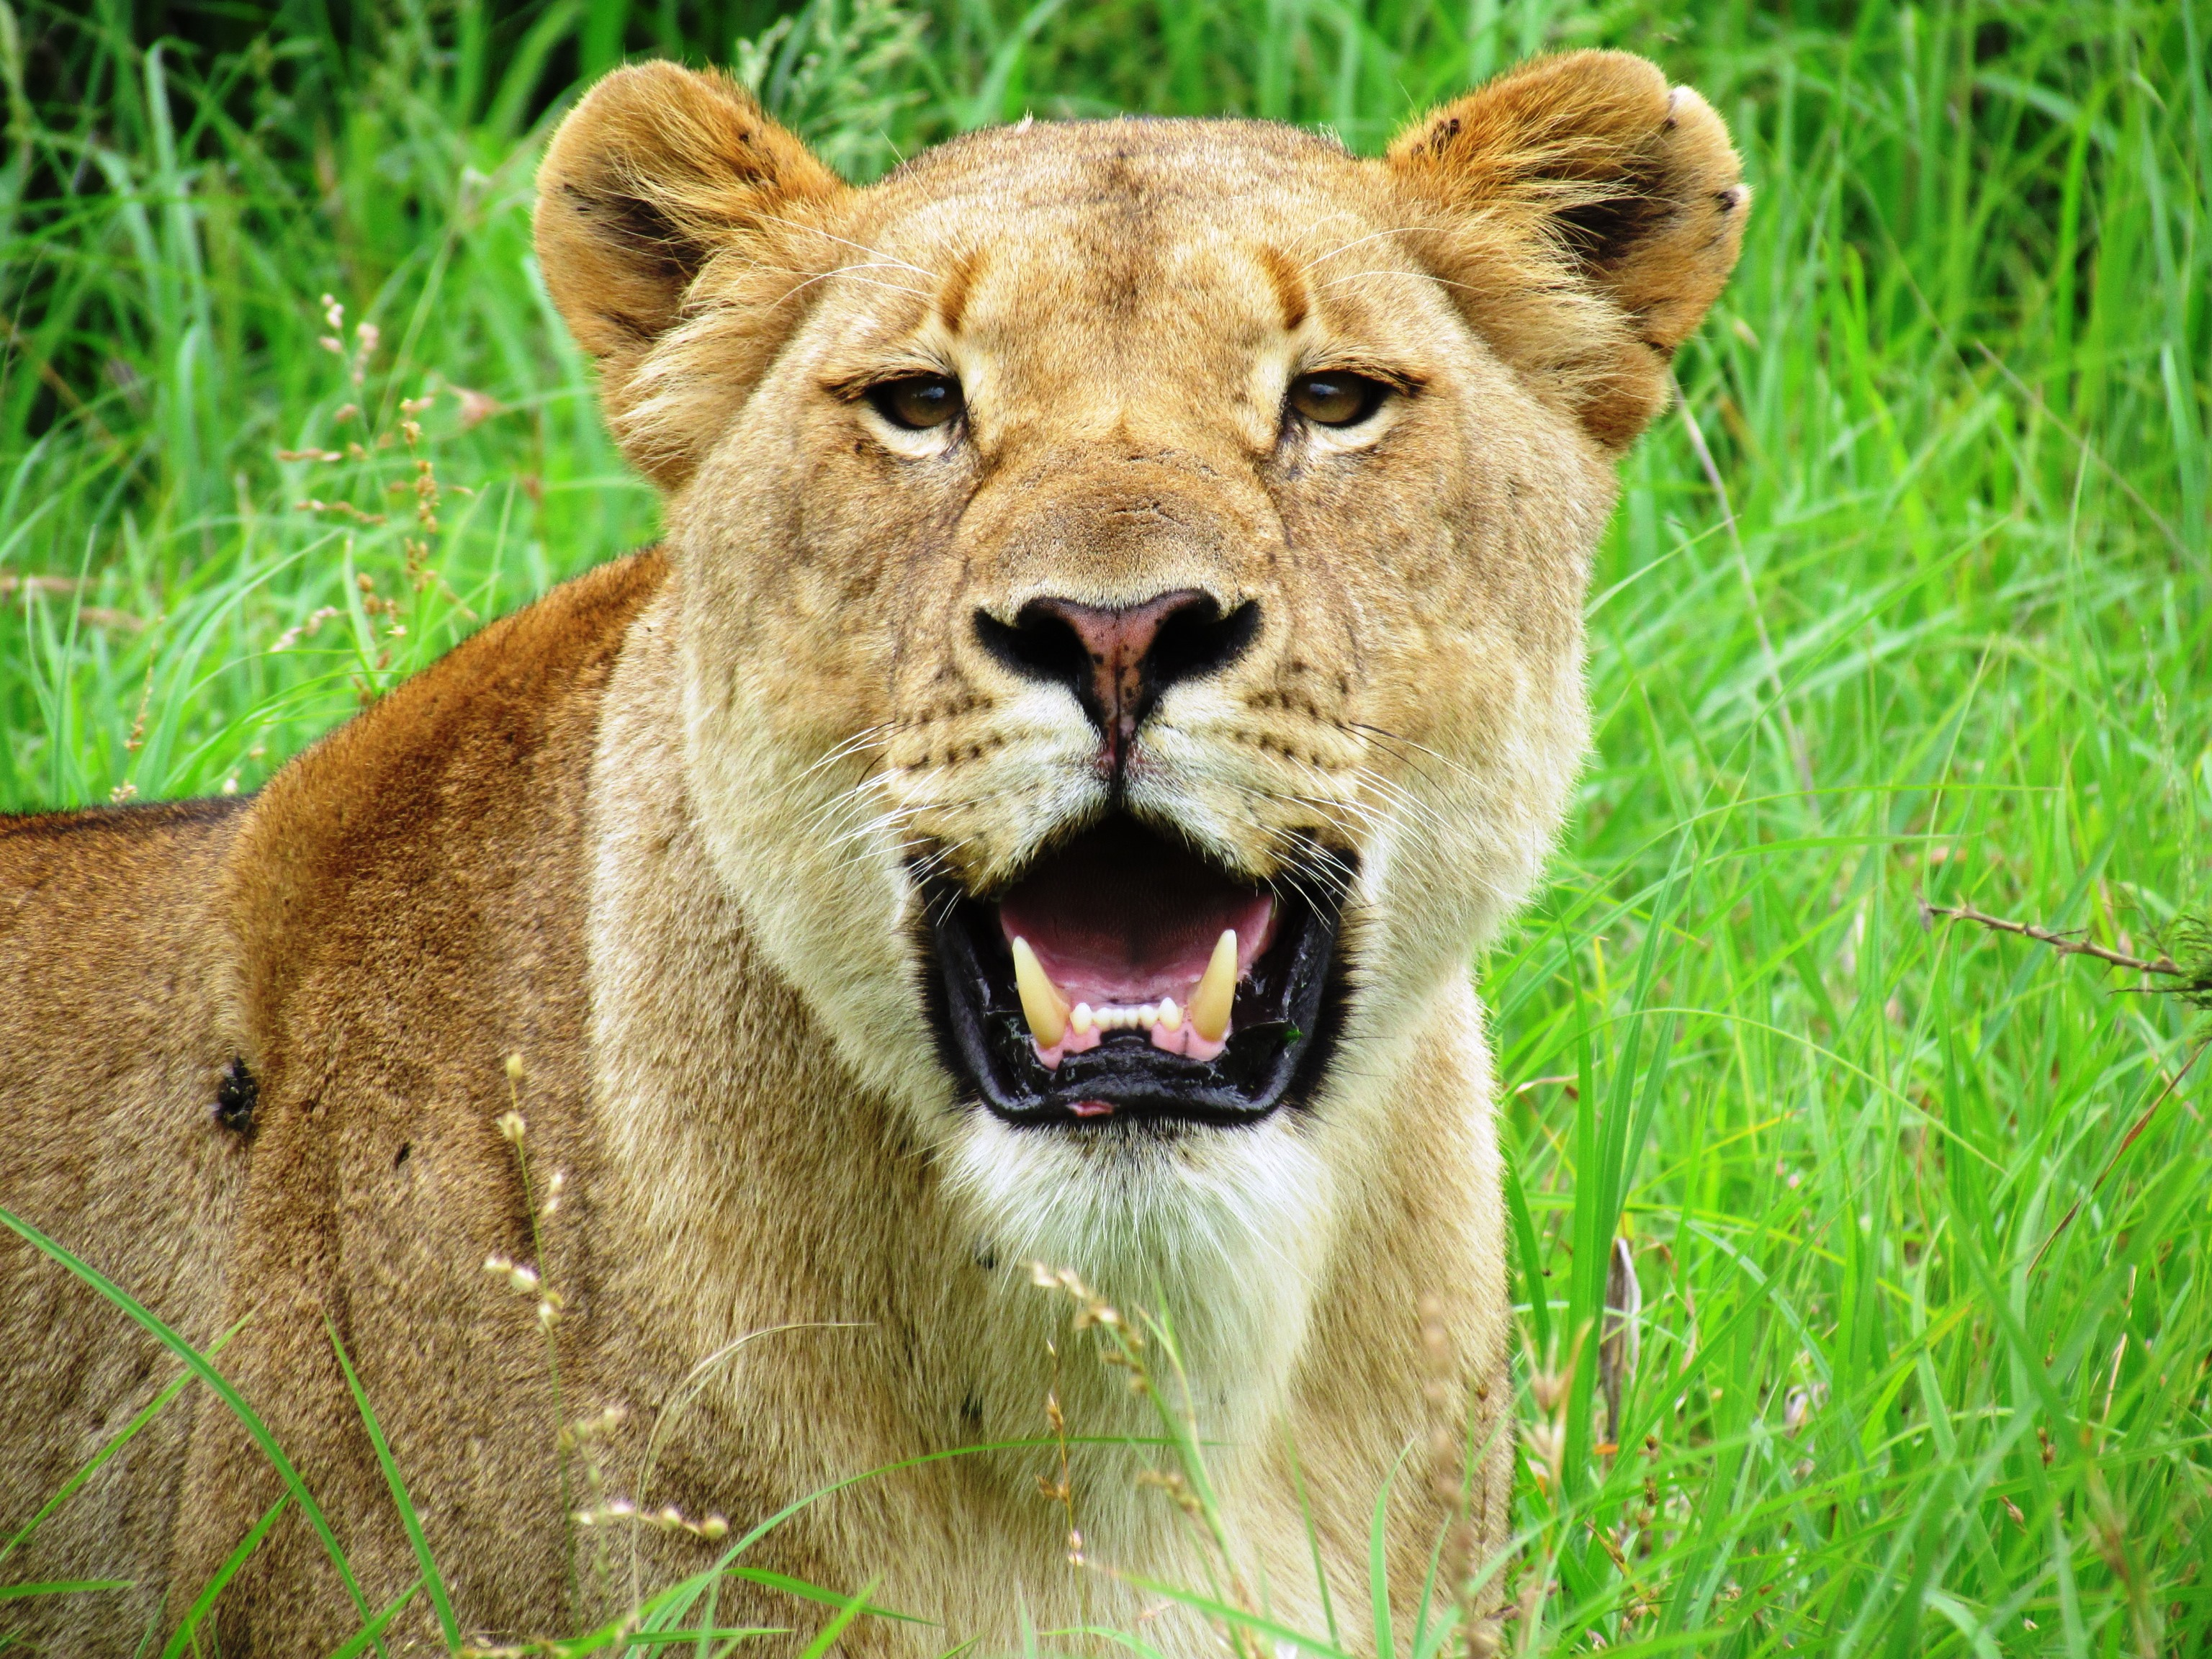 Royalty Free Pictures of Lions